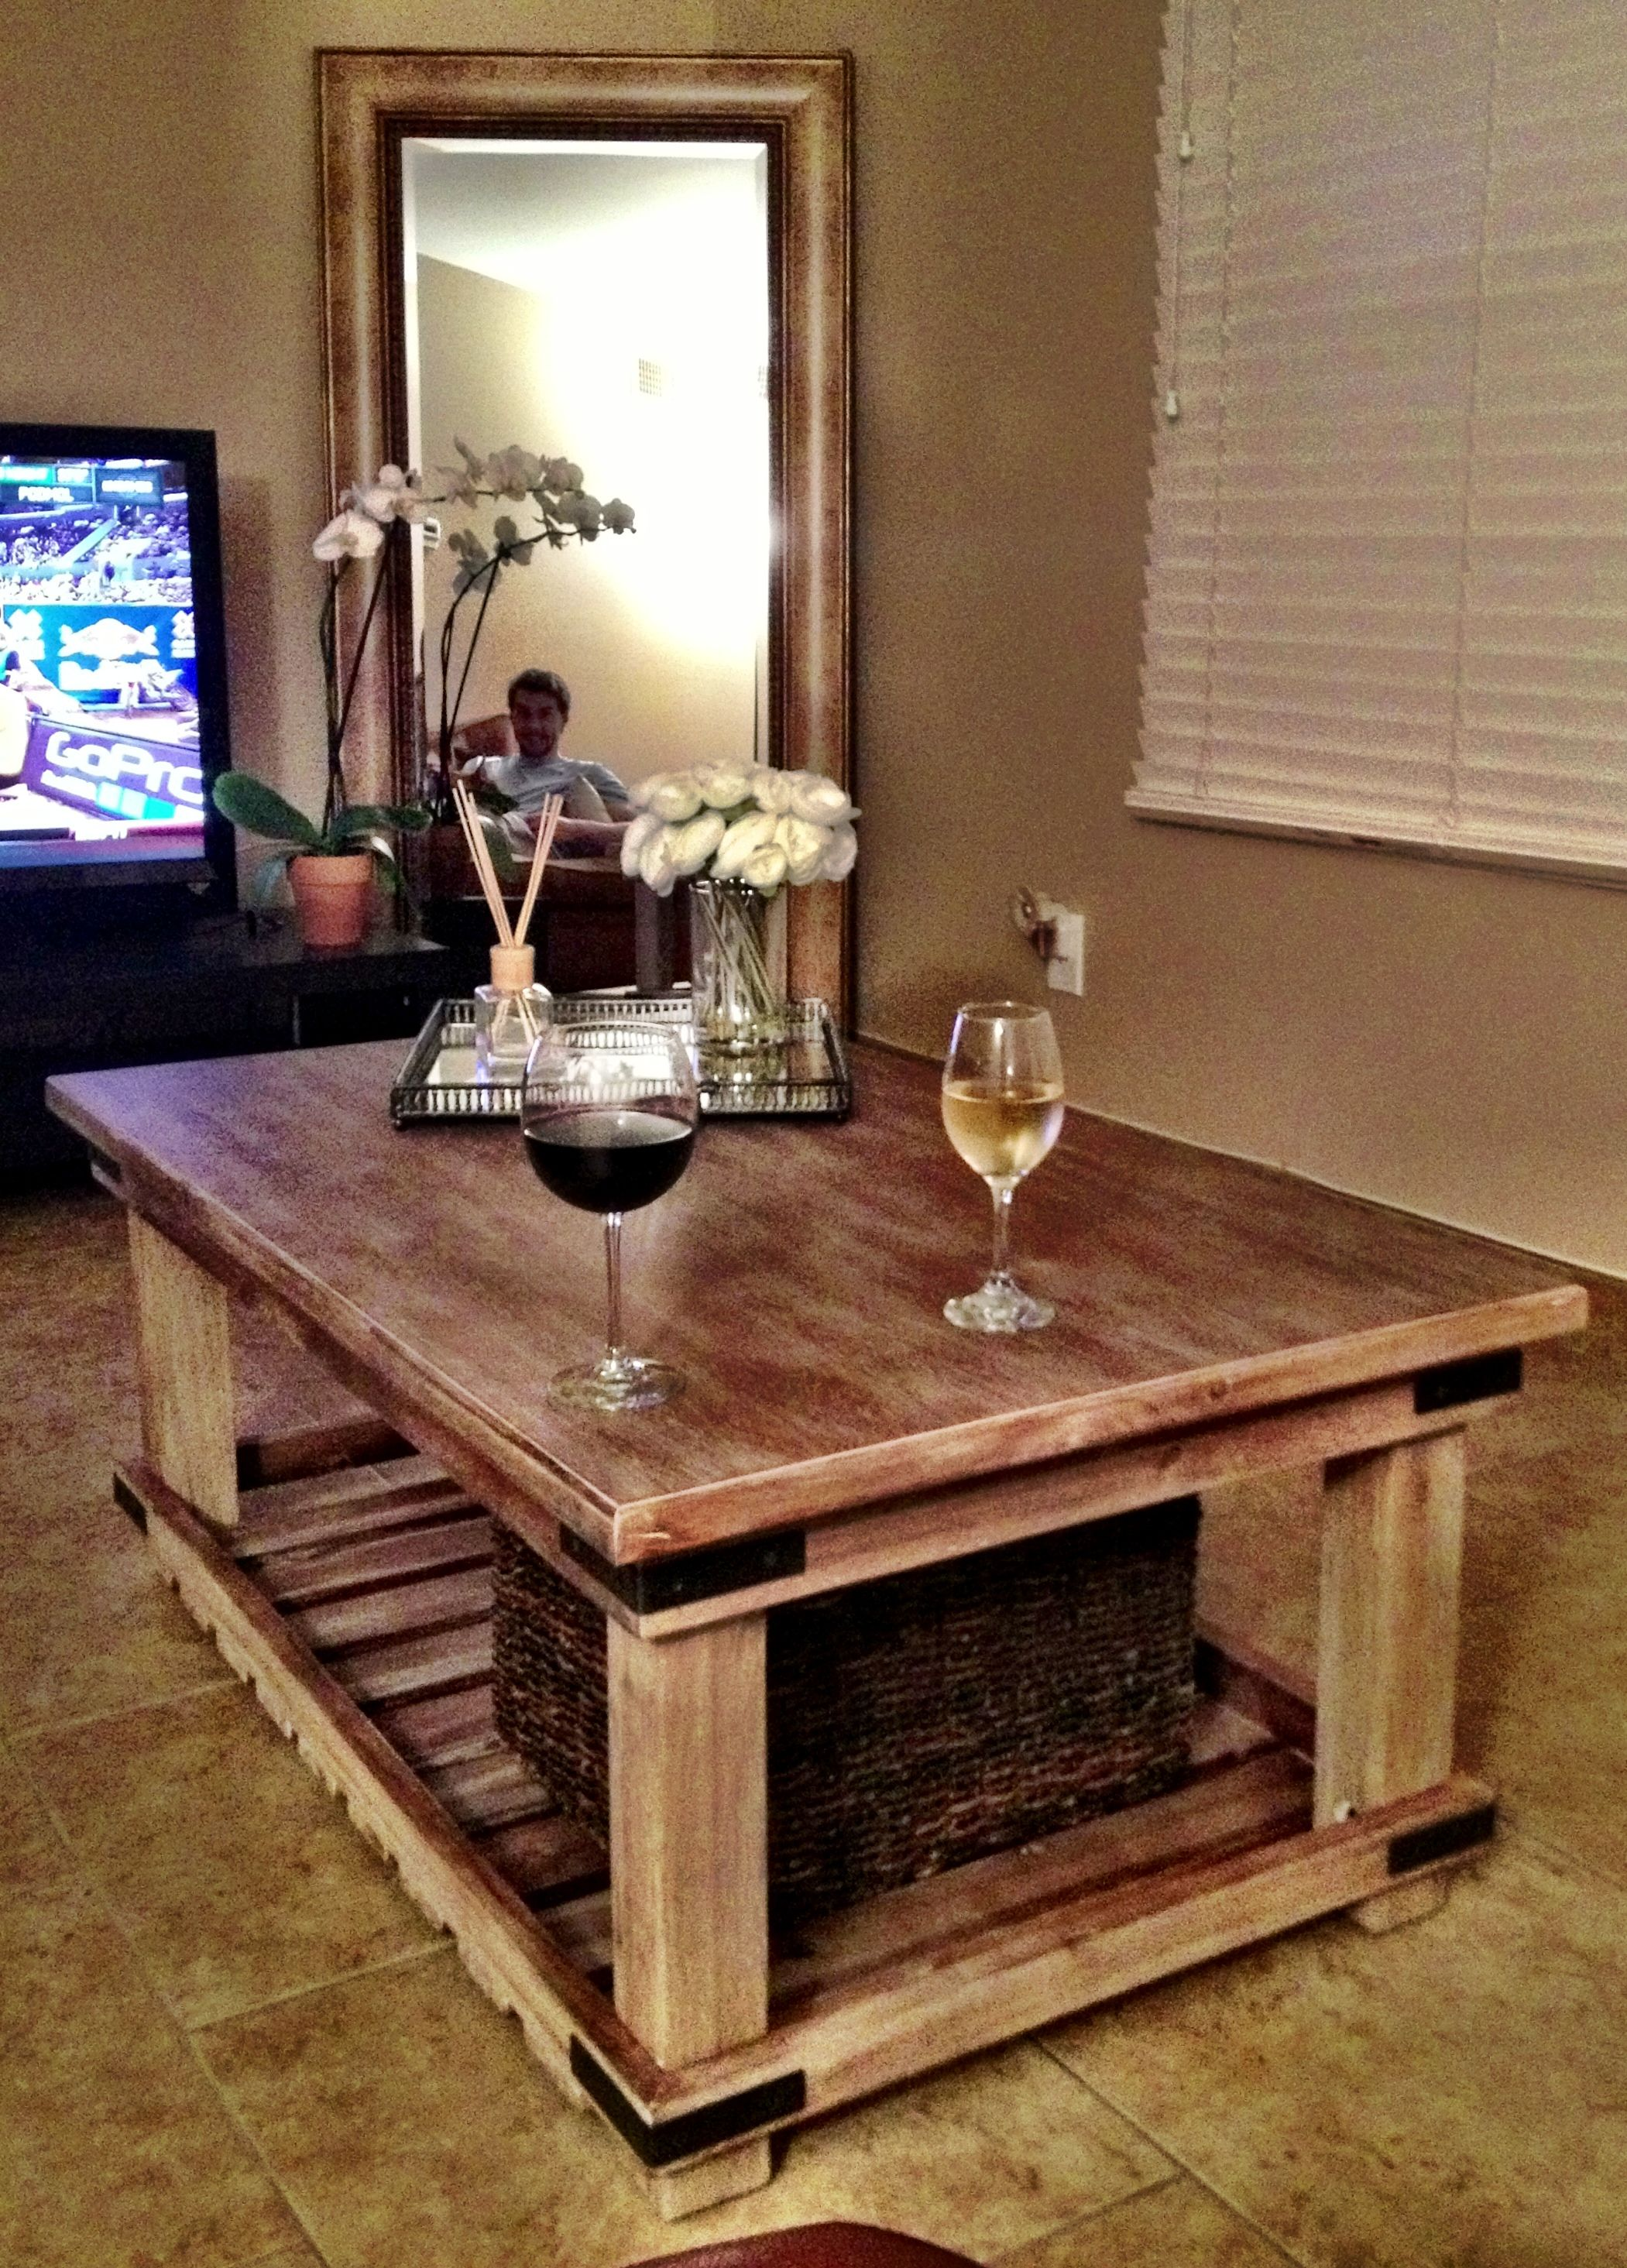 Rustic Wooden Coffee Table Coffee Table Rustic Coffee Tables Home Decor Tips [ 2929 x 2101 Pixel ]